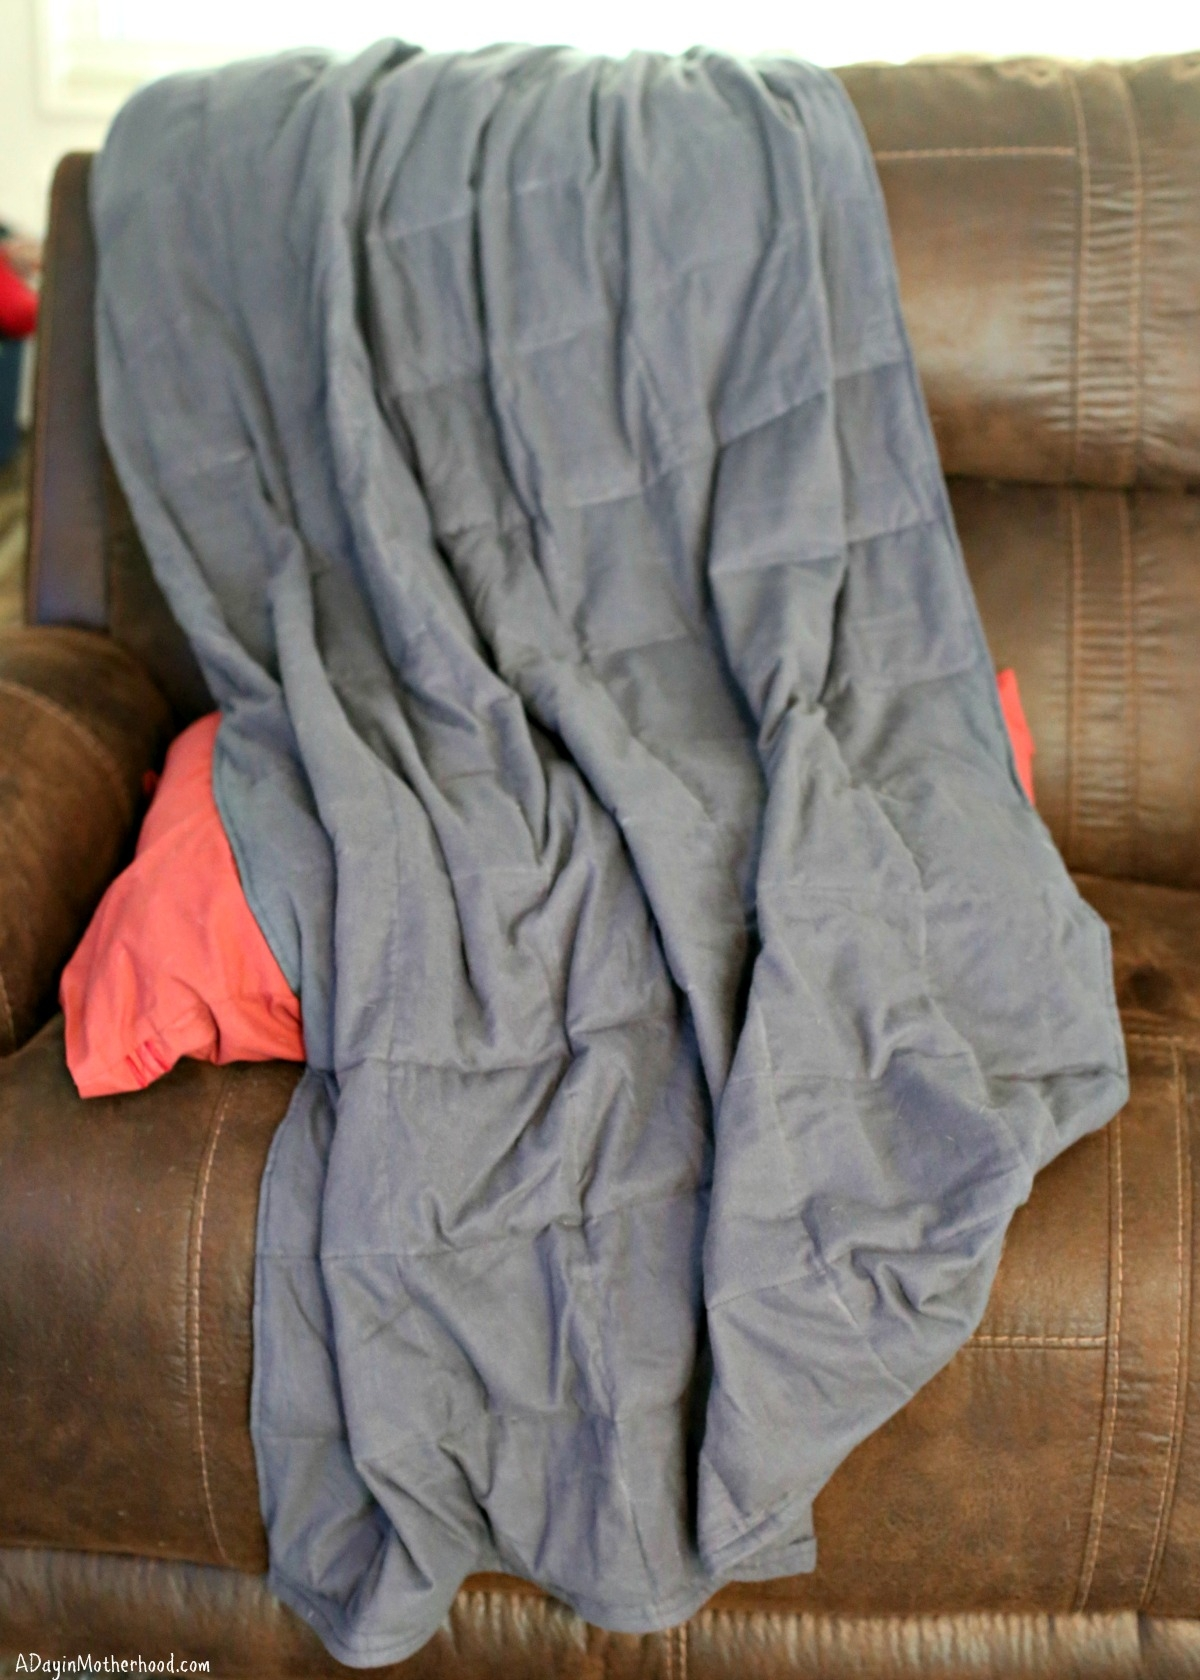 Sleep Better with the Comfort of a Weighted Blanket from Weighting Comforts